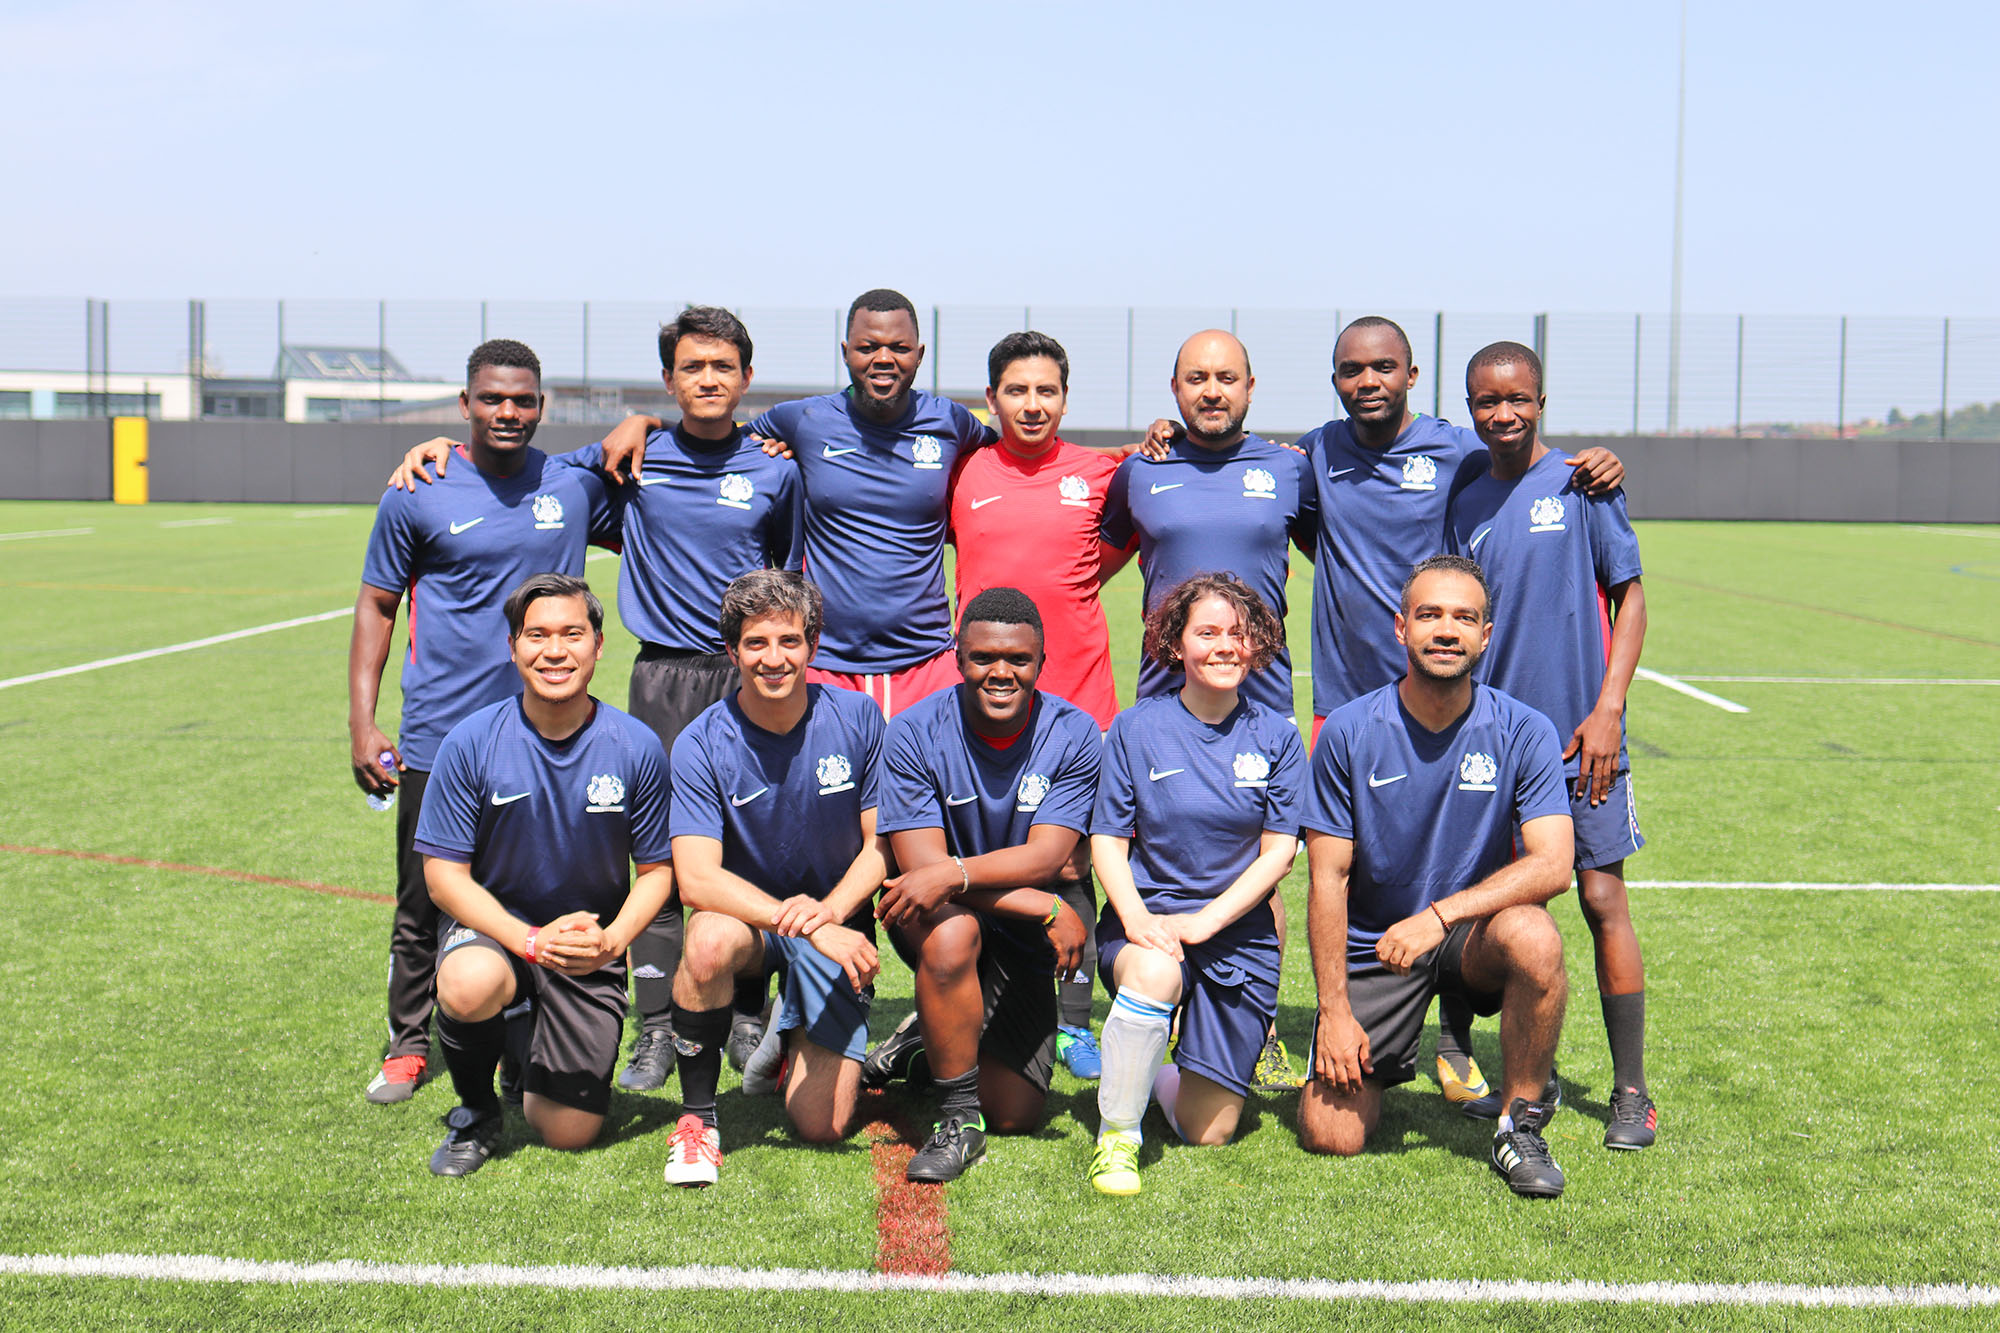 Chevening FC compete in annual CSC vs Chevening football match